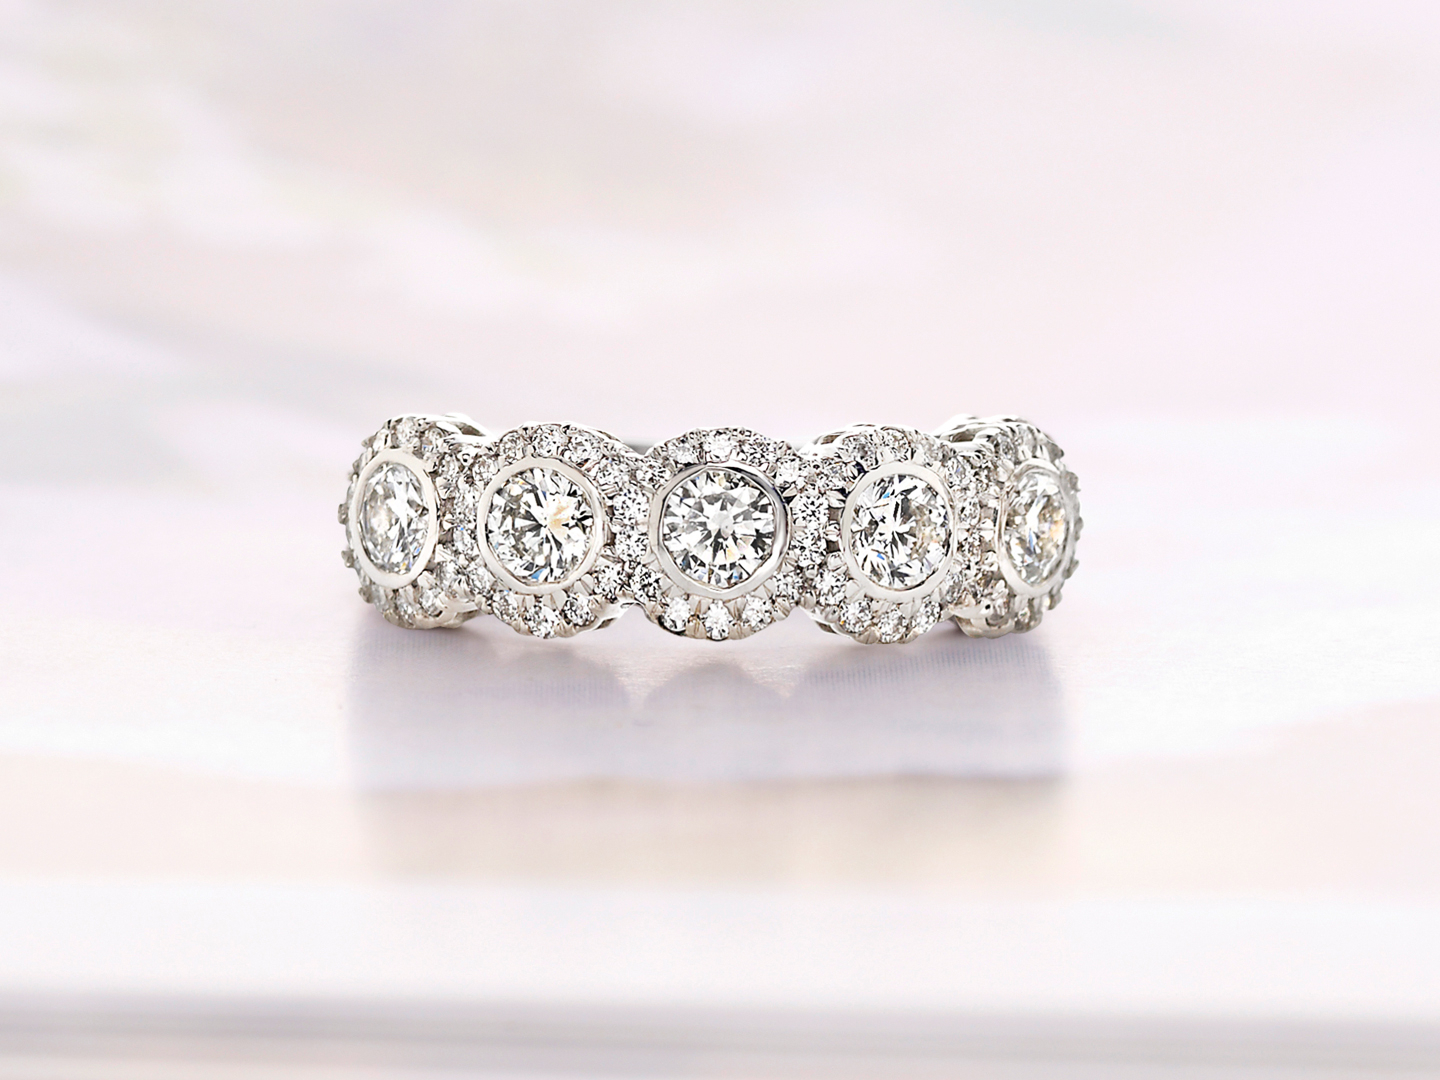 Beautiful Bezel Set Diamond Rings | Brilliant Earth In Most Current Diamond Five Stone Anniversary Bands In White Gold (View 13 of 25)